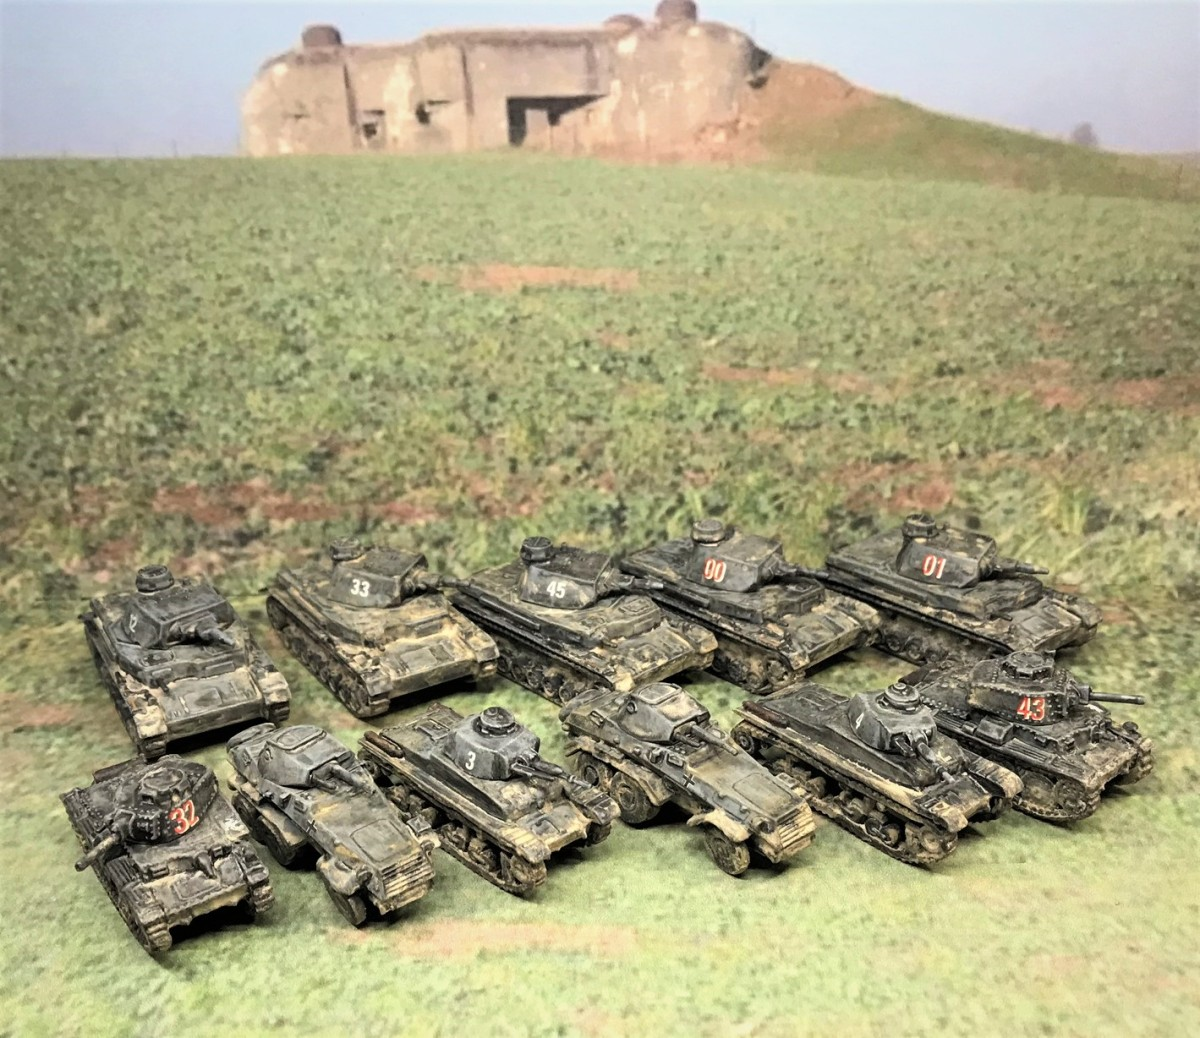 German Armor for the 80th Anniversary of the Battle of France: Panzer 35(t), Panzer 38(t), Panzer IVB, and Panzer IVD Tanks; and Sd.Kfz. 231 (6-rad) Armored Cars